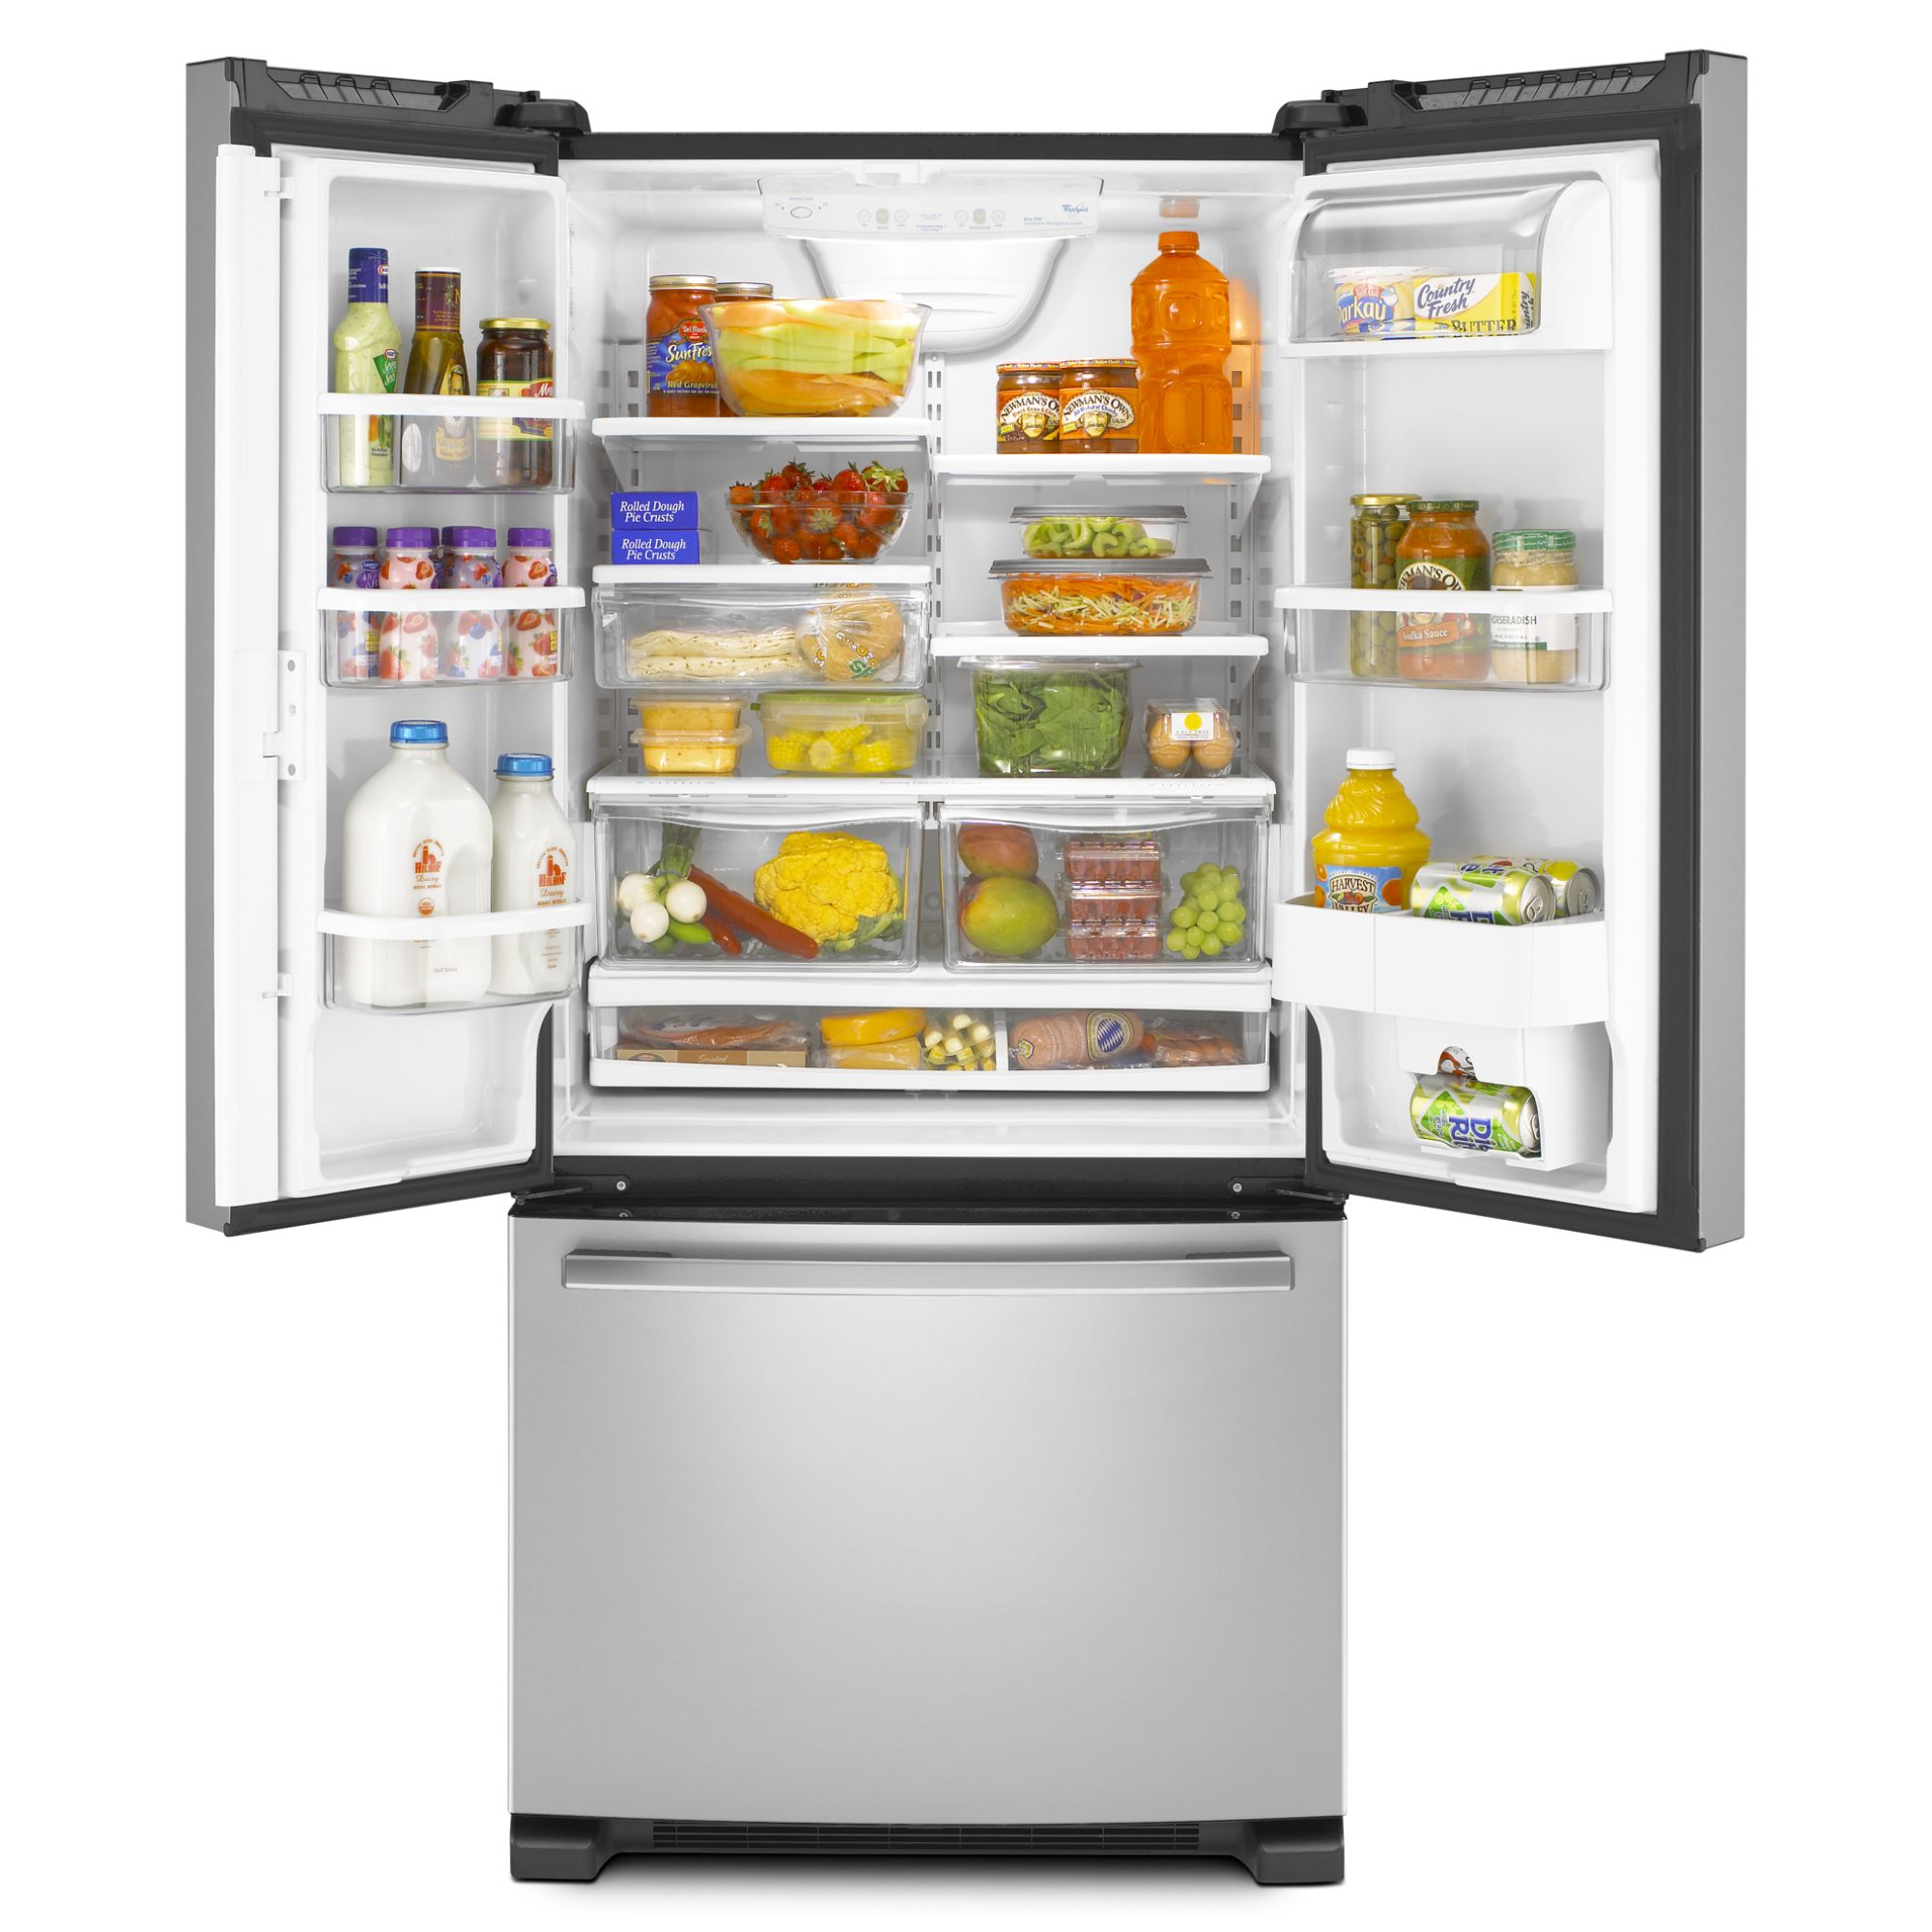 Whirlpool Gold 24.8 cu. ft. French-Door Refrigerator w/Ice Maker